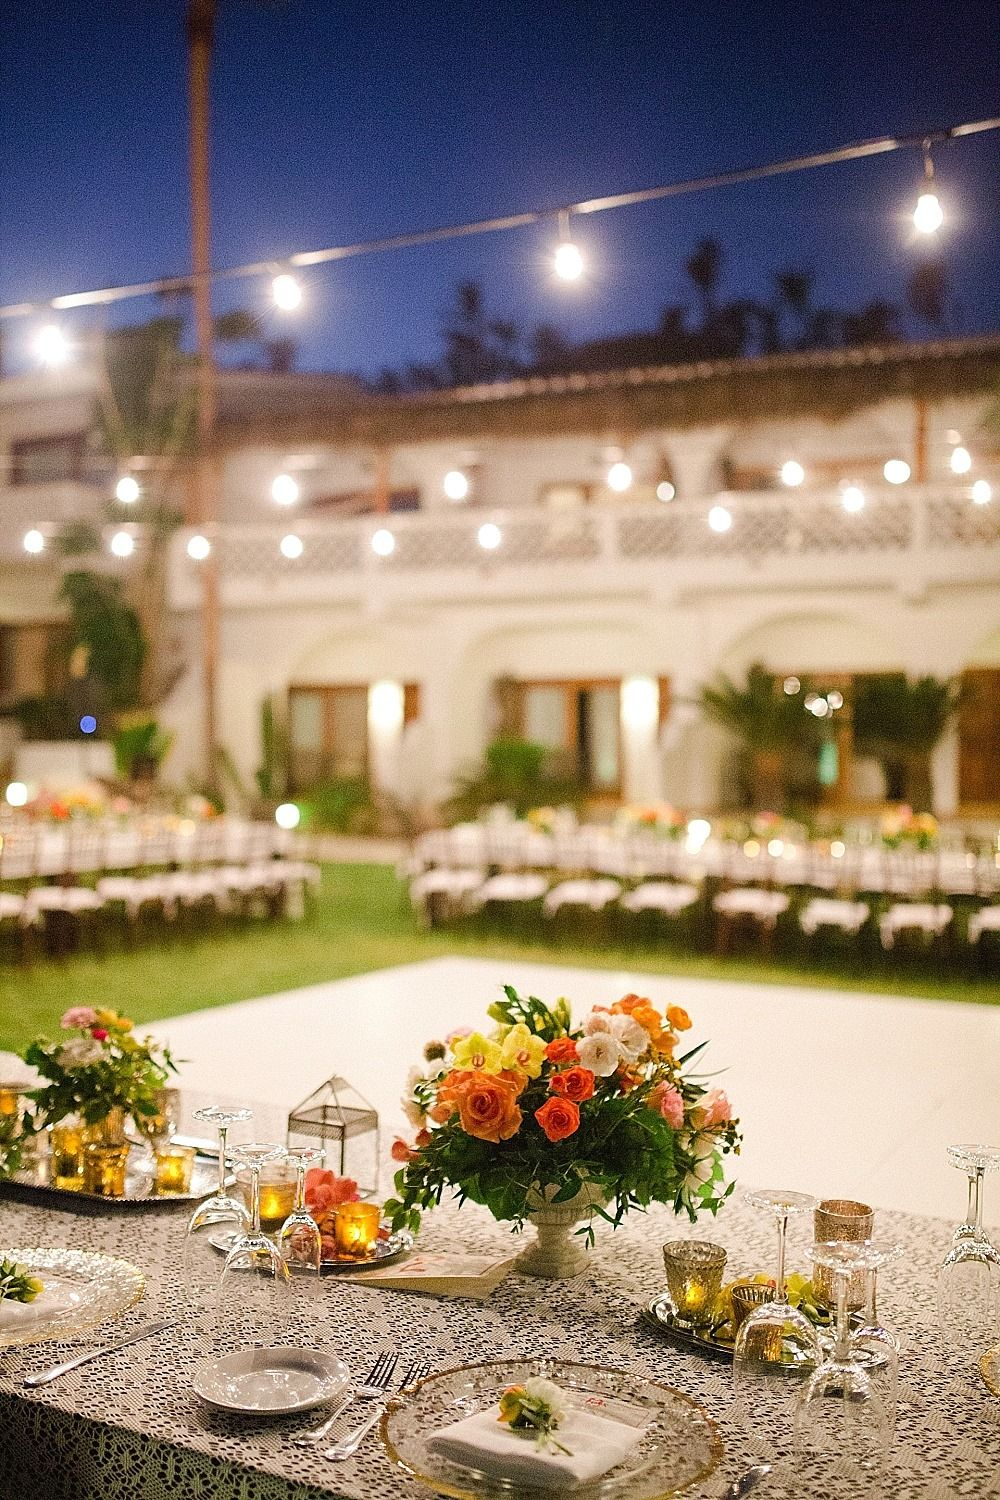 Bright And Vibrant This Cabo Surf Hotel Soiree Is A Destination Wedding Dream Come True Seen Through The Lens Of Uber Talented Sara Richardson